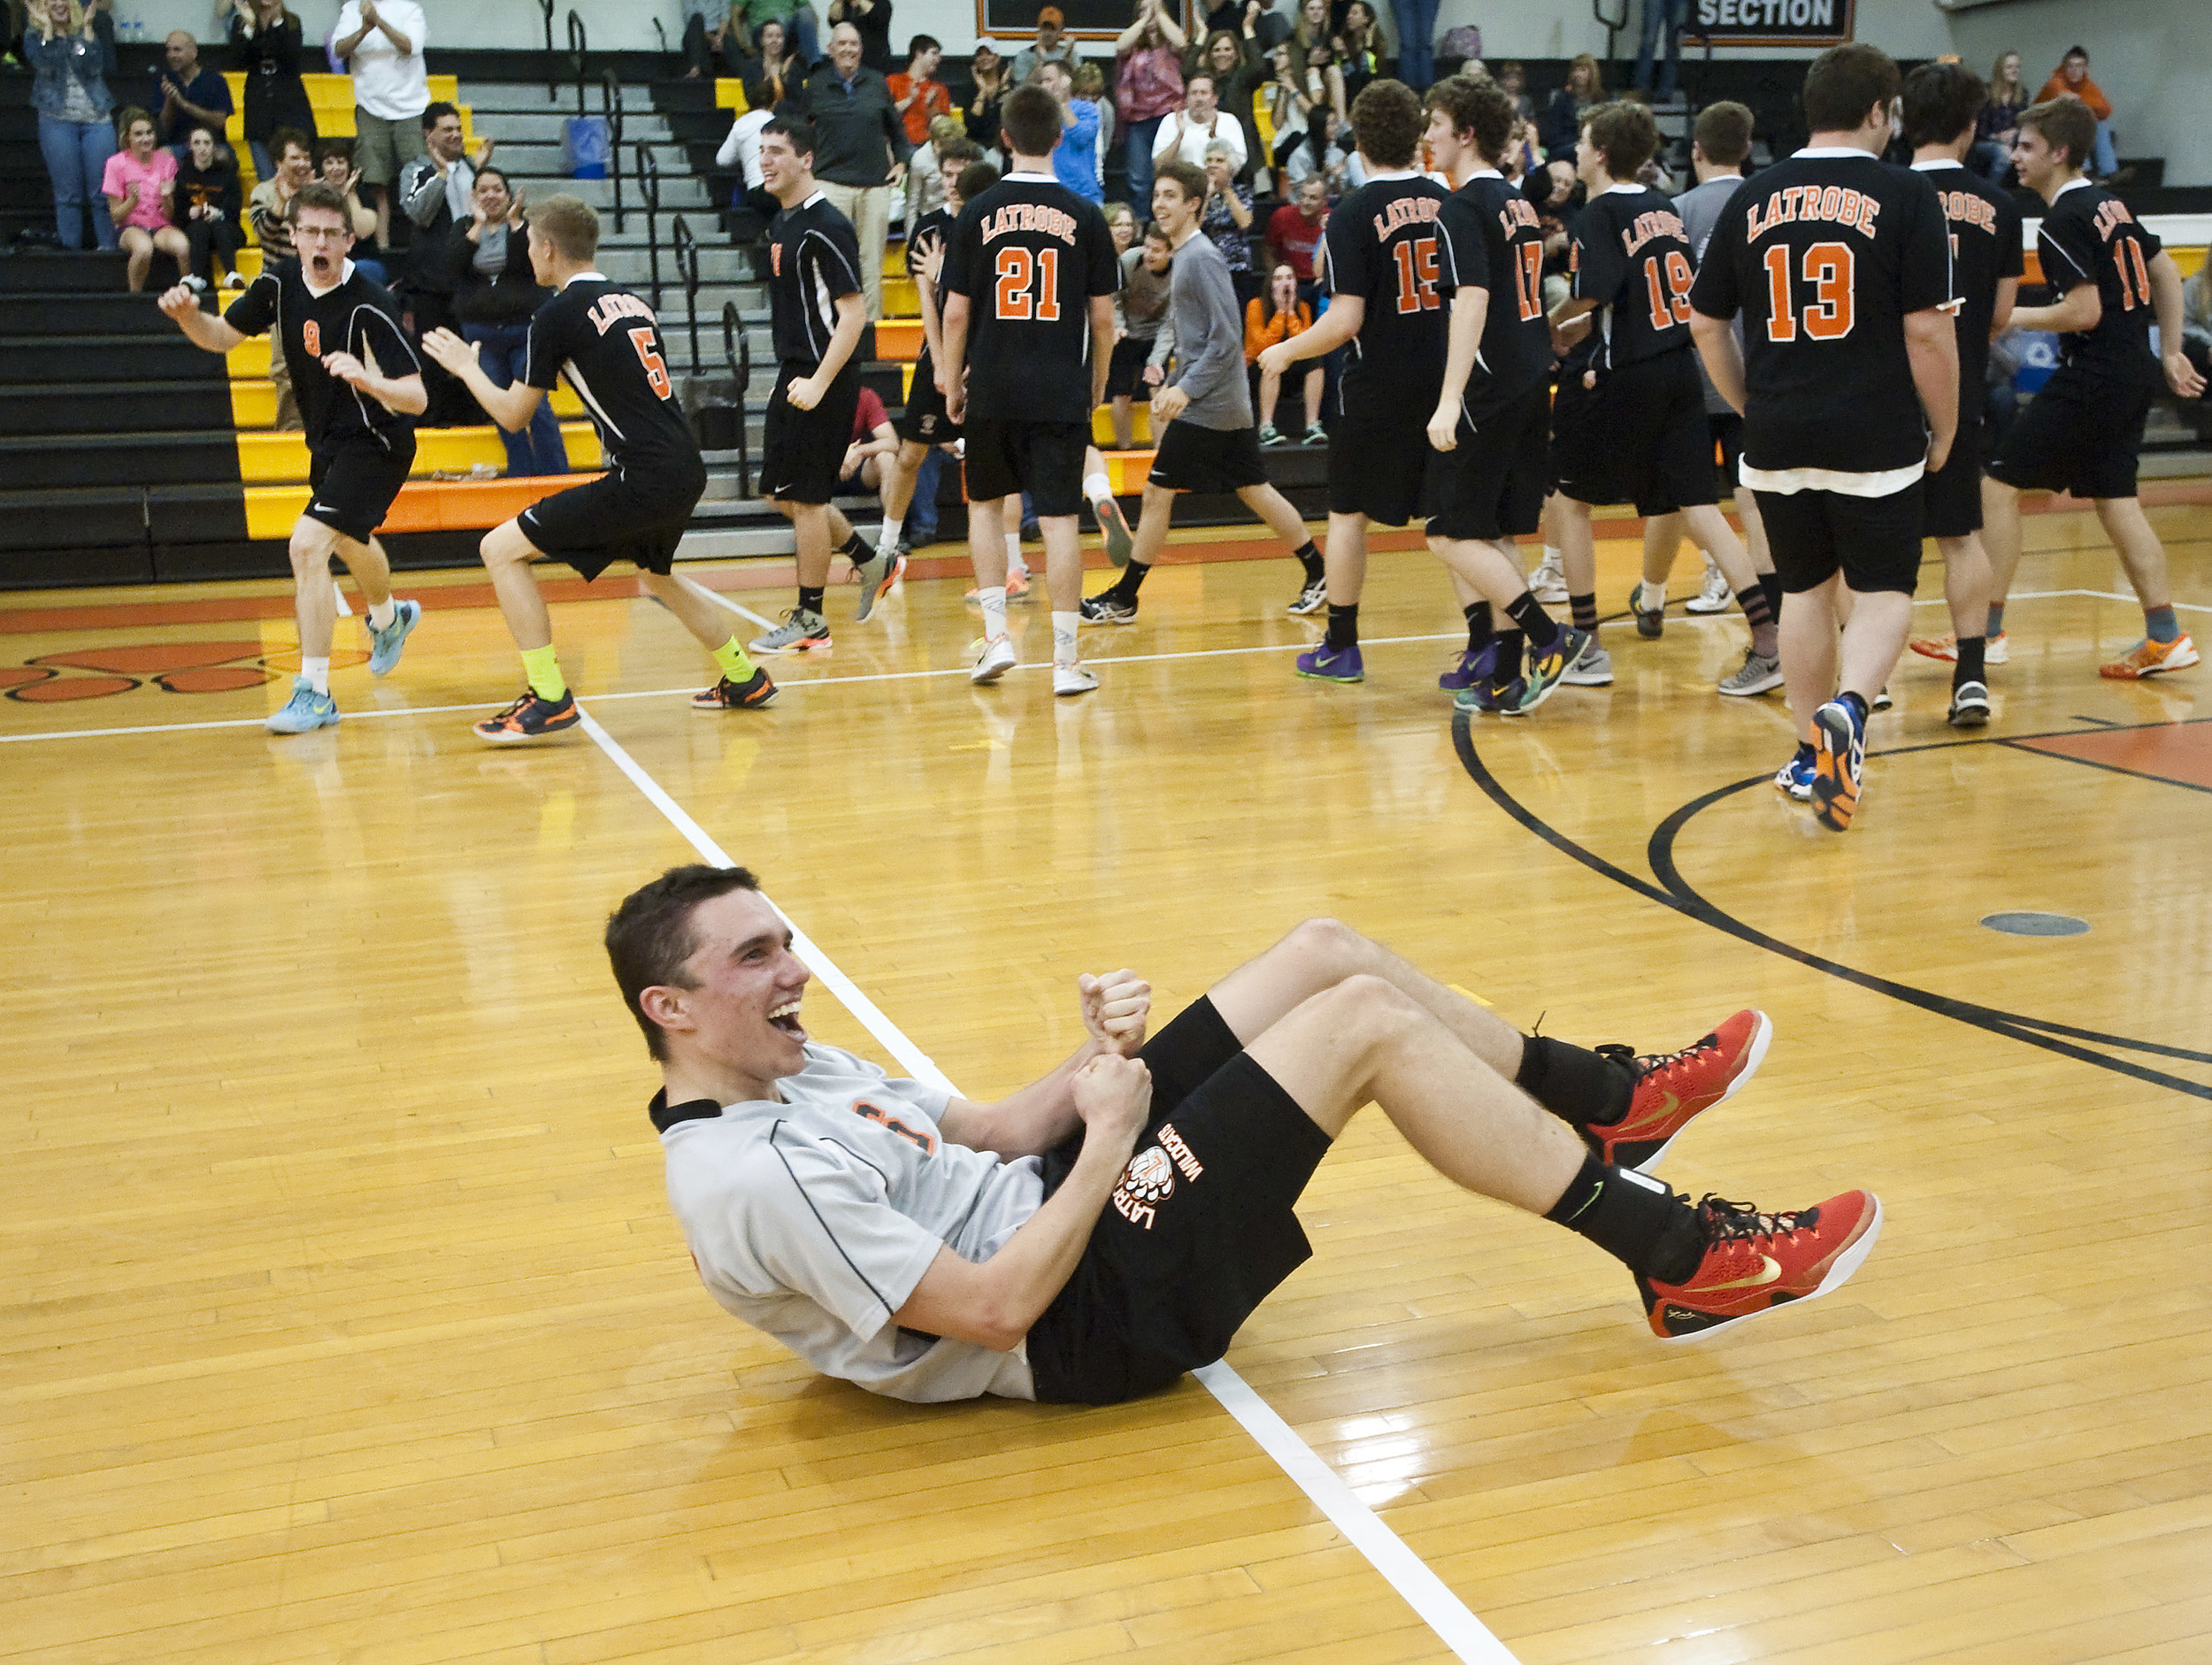 Latrobe's Jack Fenton reacts after the final point against Penn-Trafford during a volleyball match at Latrobe on Thursday, April 28, 2016. Latrobe won 3-0.